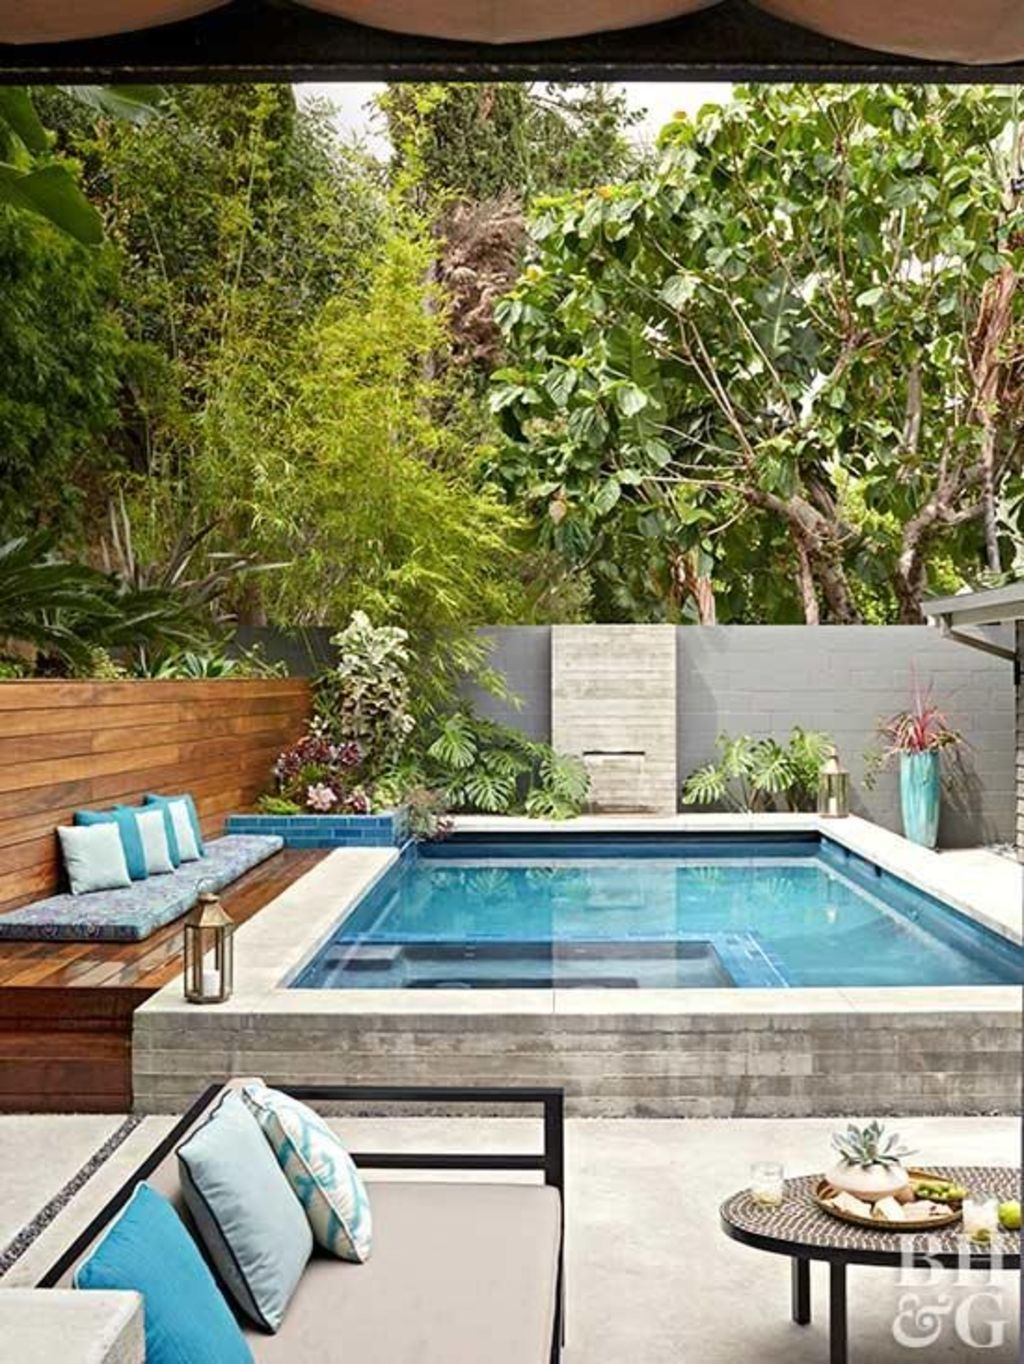 Small swimming pools made for small spaces and tight budgets Part 36